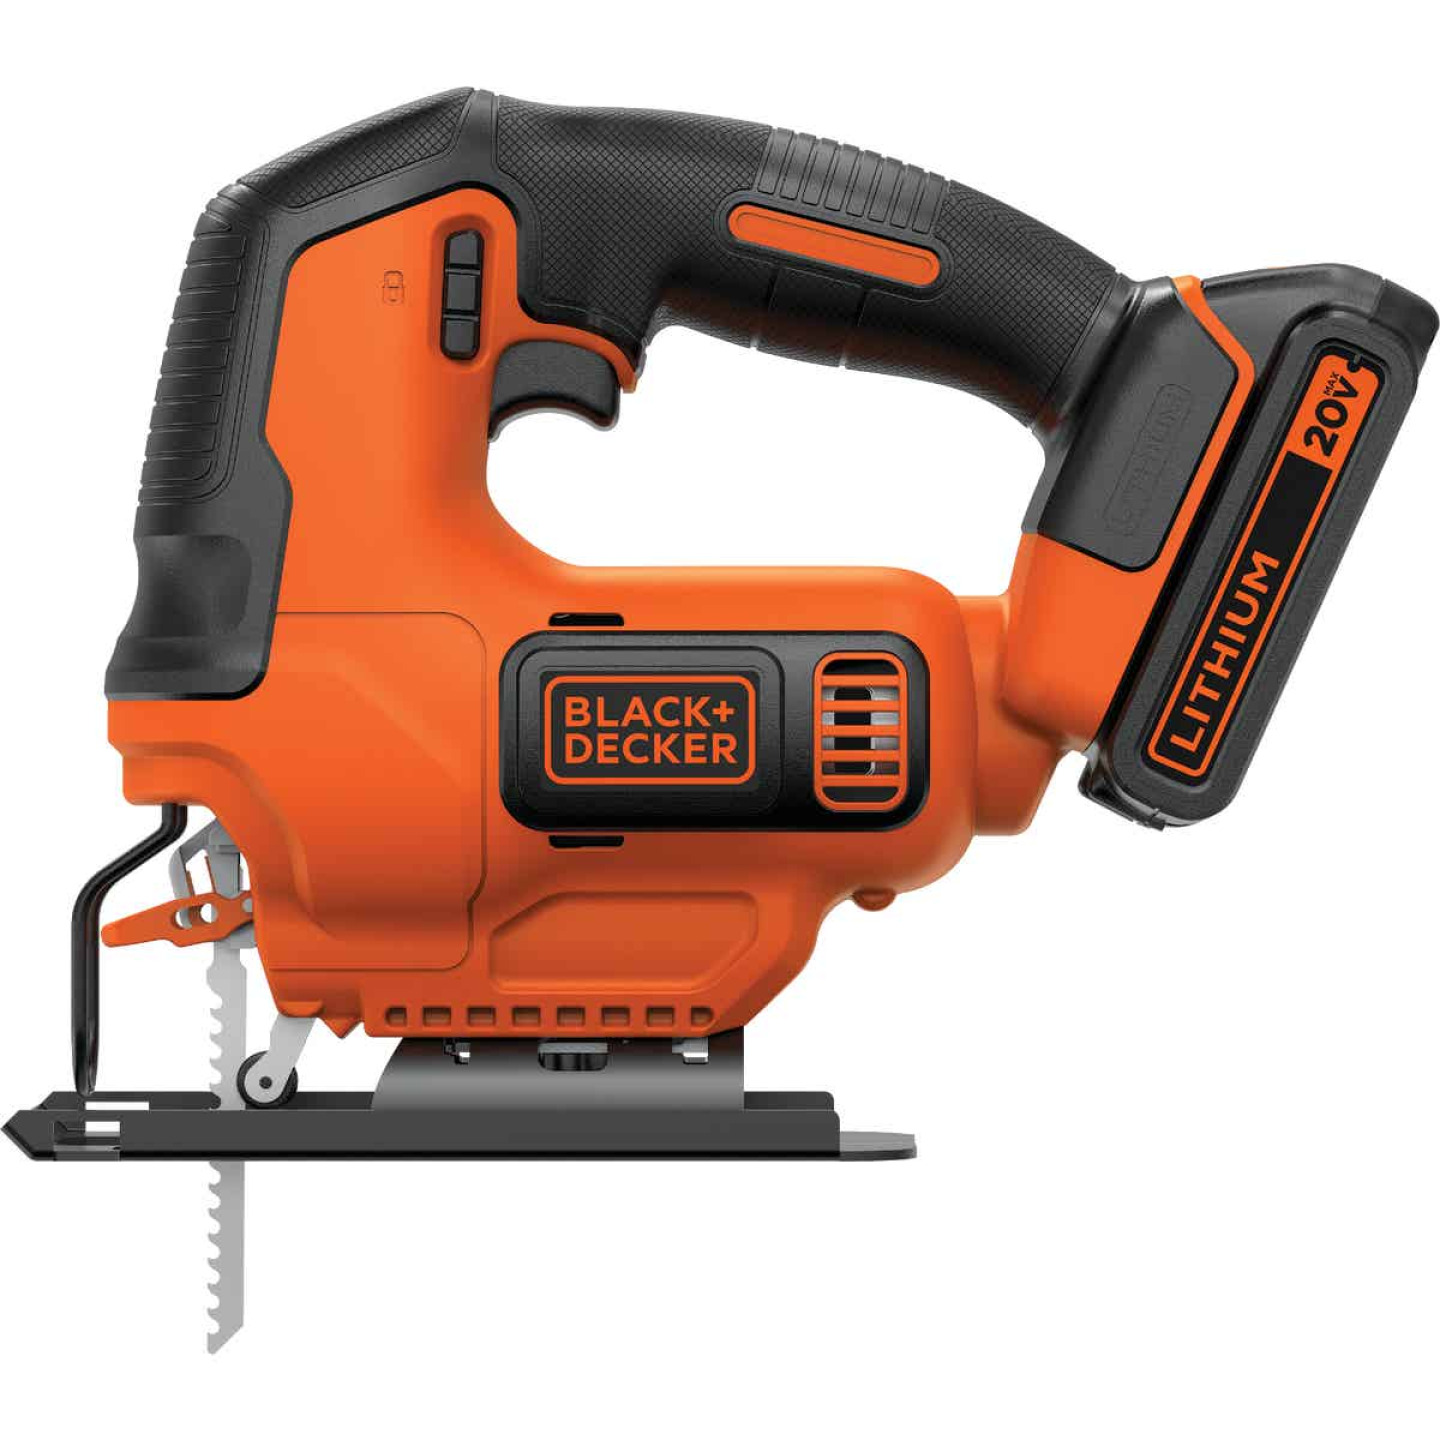 Black & Decker 20 Volt MAX Lithium-Ion 1.5 Ah Cordless Jig Saw Kit Image 5